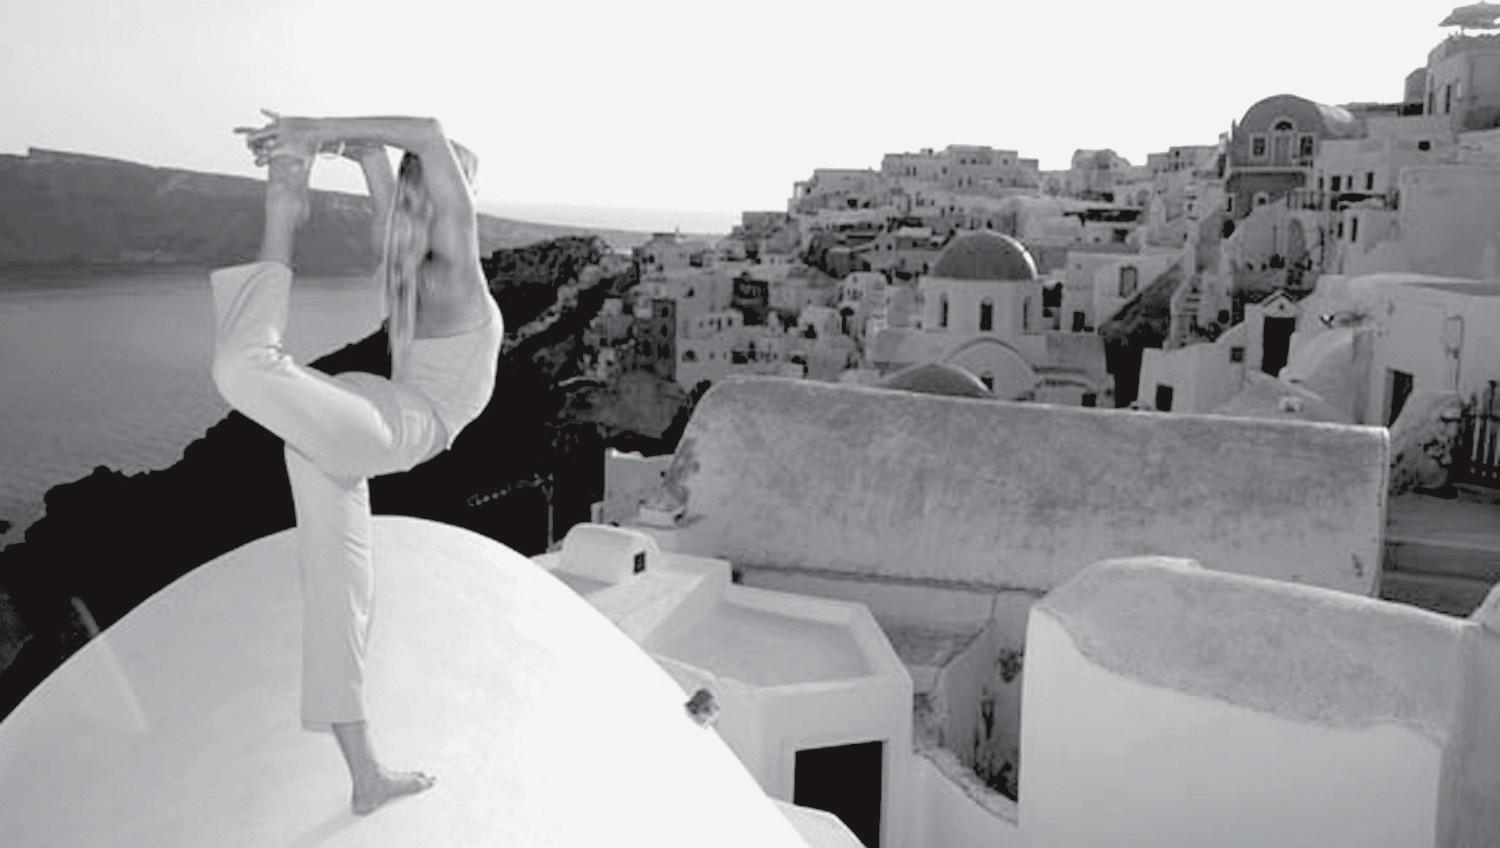 POSER—Shiva Rea, who will lead yoga classes at Bhakti Fest, salutes the sun above a Mediterranean town.